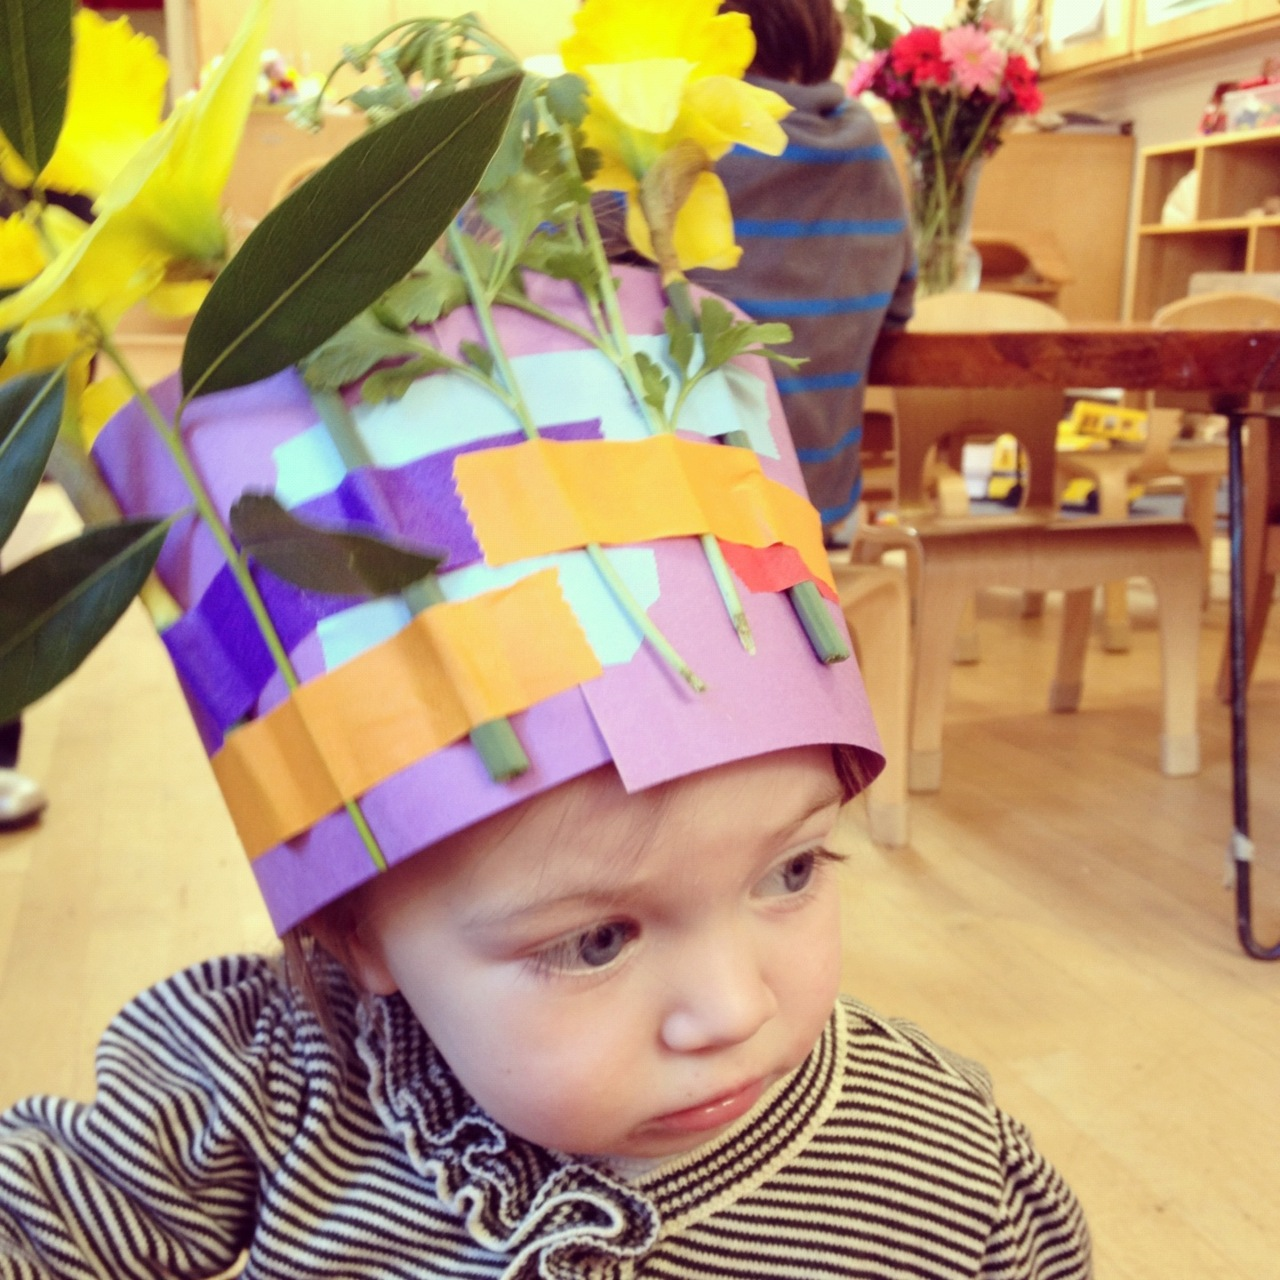 Lalou was invited to her big brother's preschool for a spring party last week. The kids made crowns with construction paper, flowers and colored tape. Make one with a lovely little of your own.